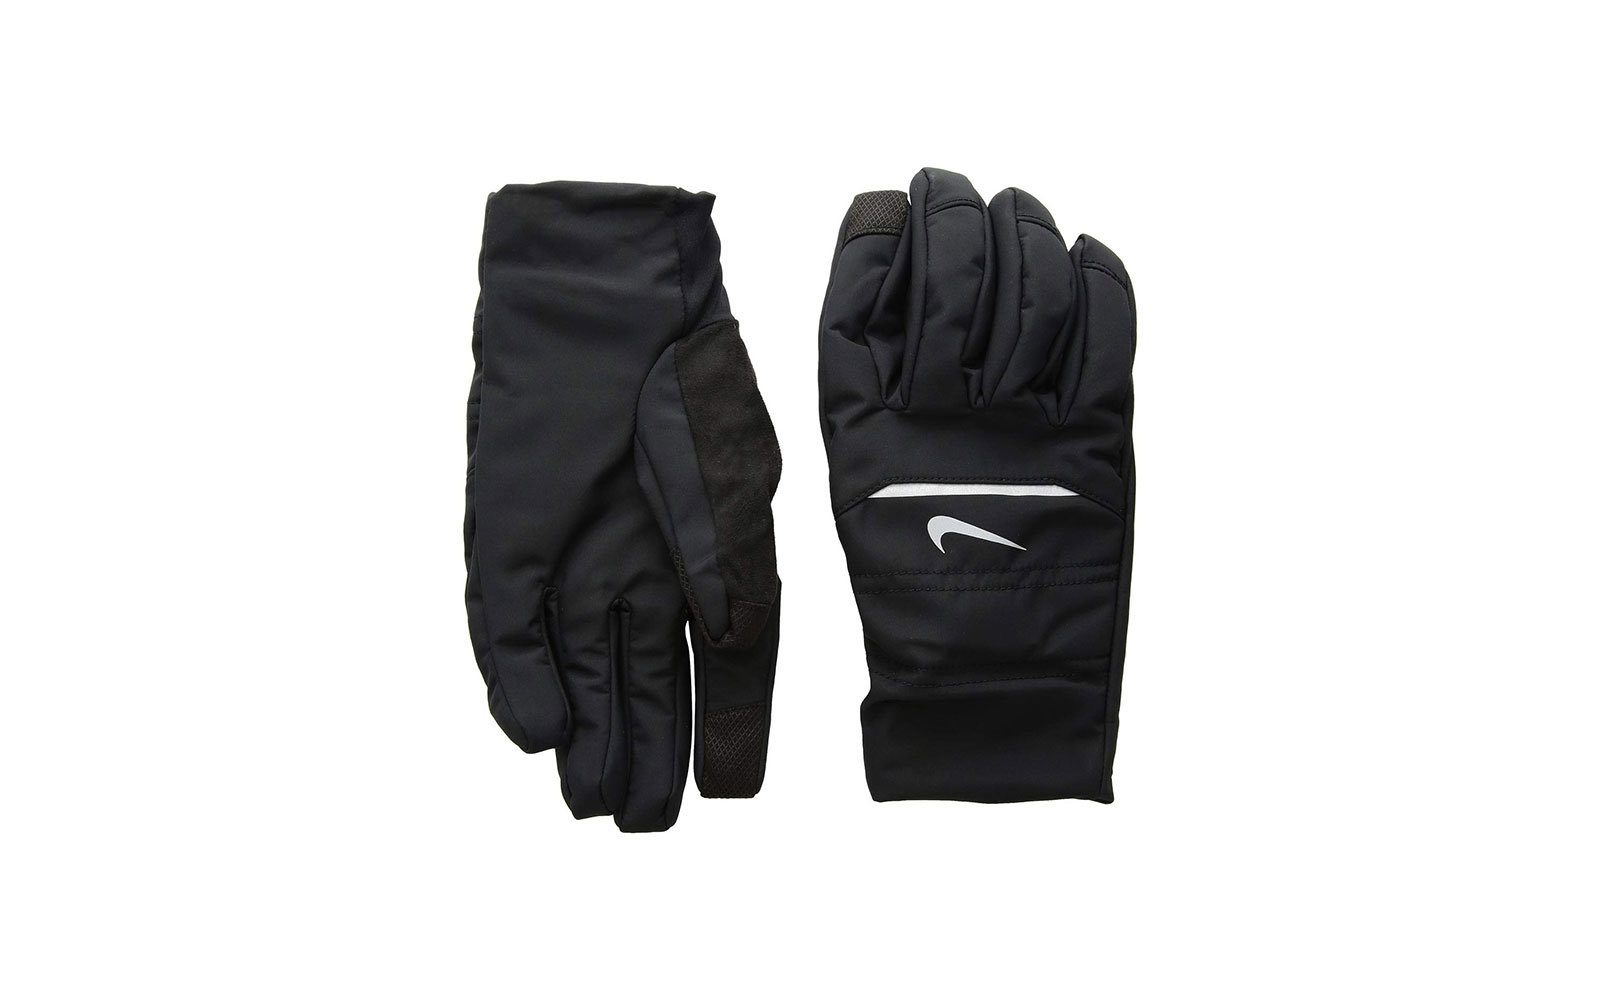 Nike winter running gloves